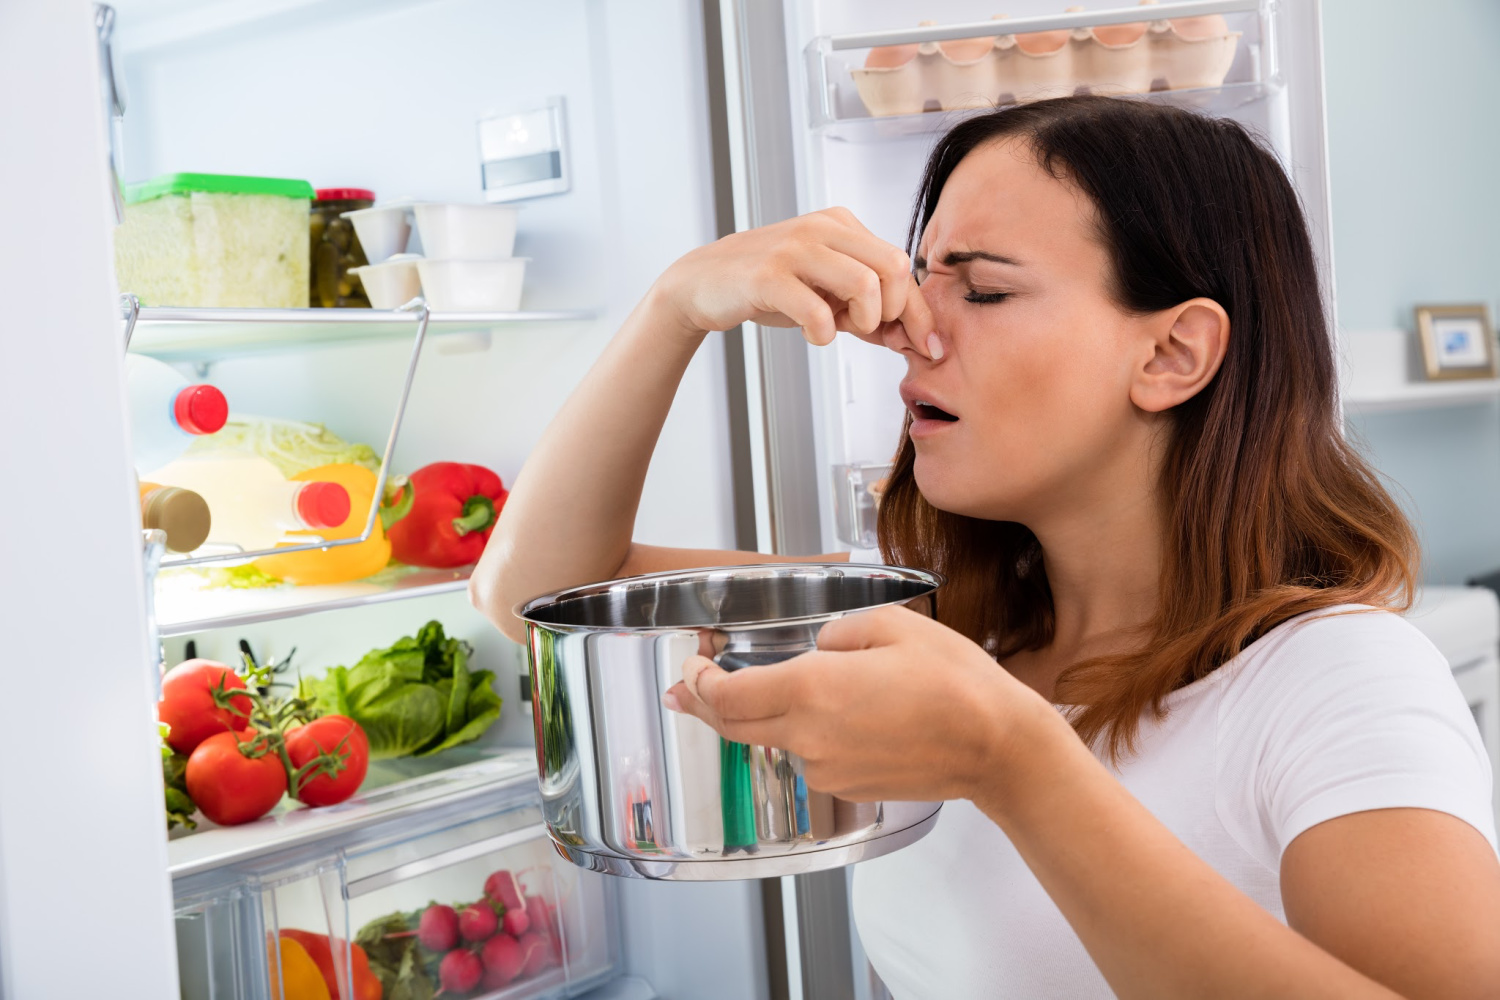 woman smelling spoiled leftovers. How to clean and organize your fridge